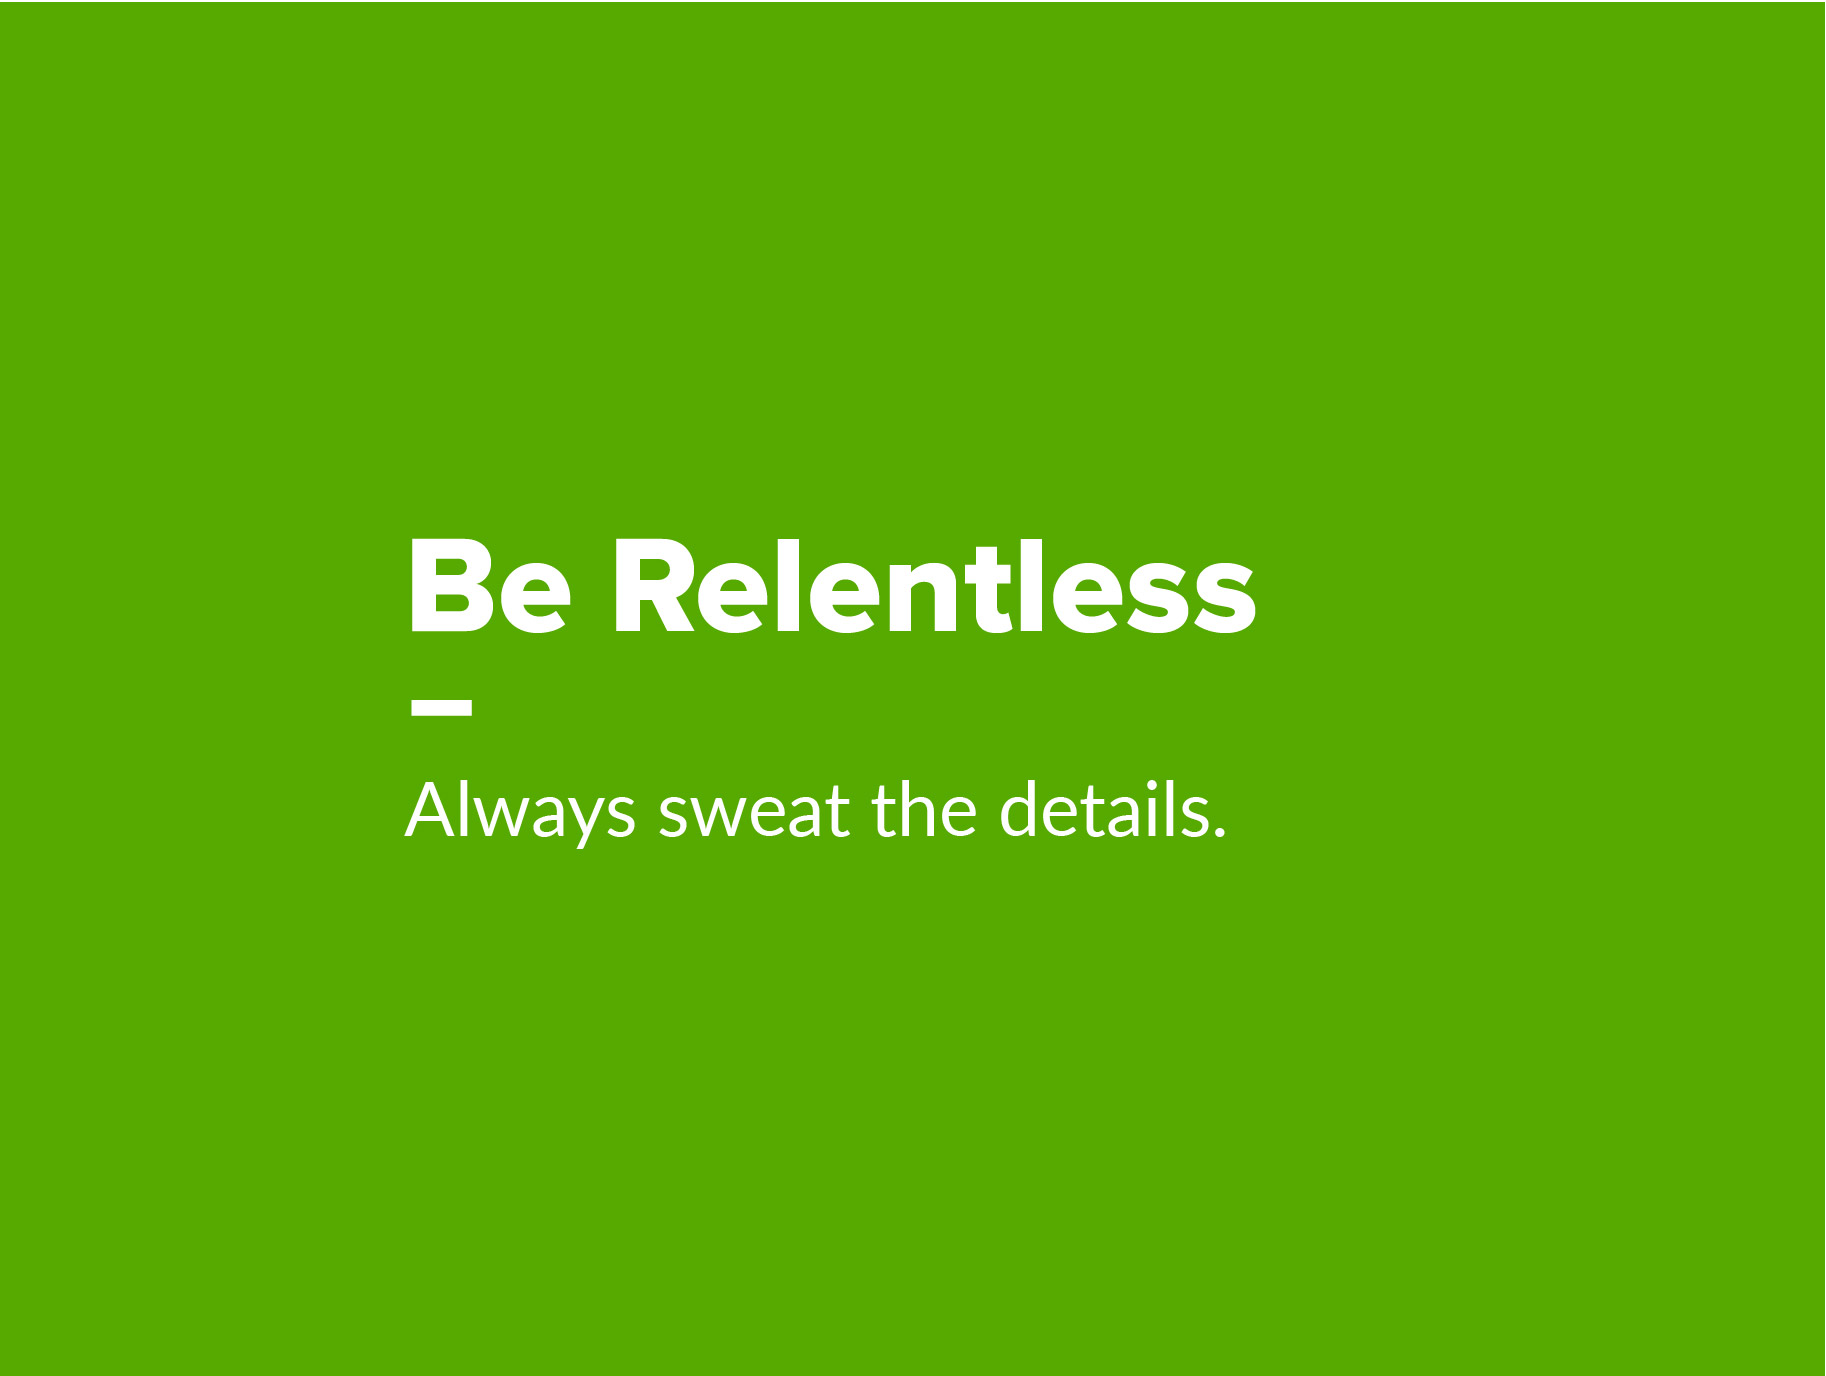 berelentless-01.jpg